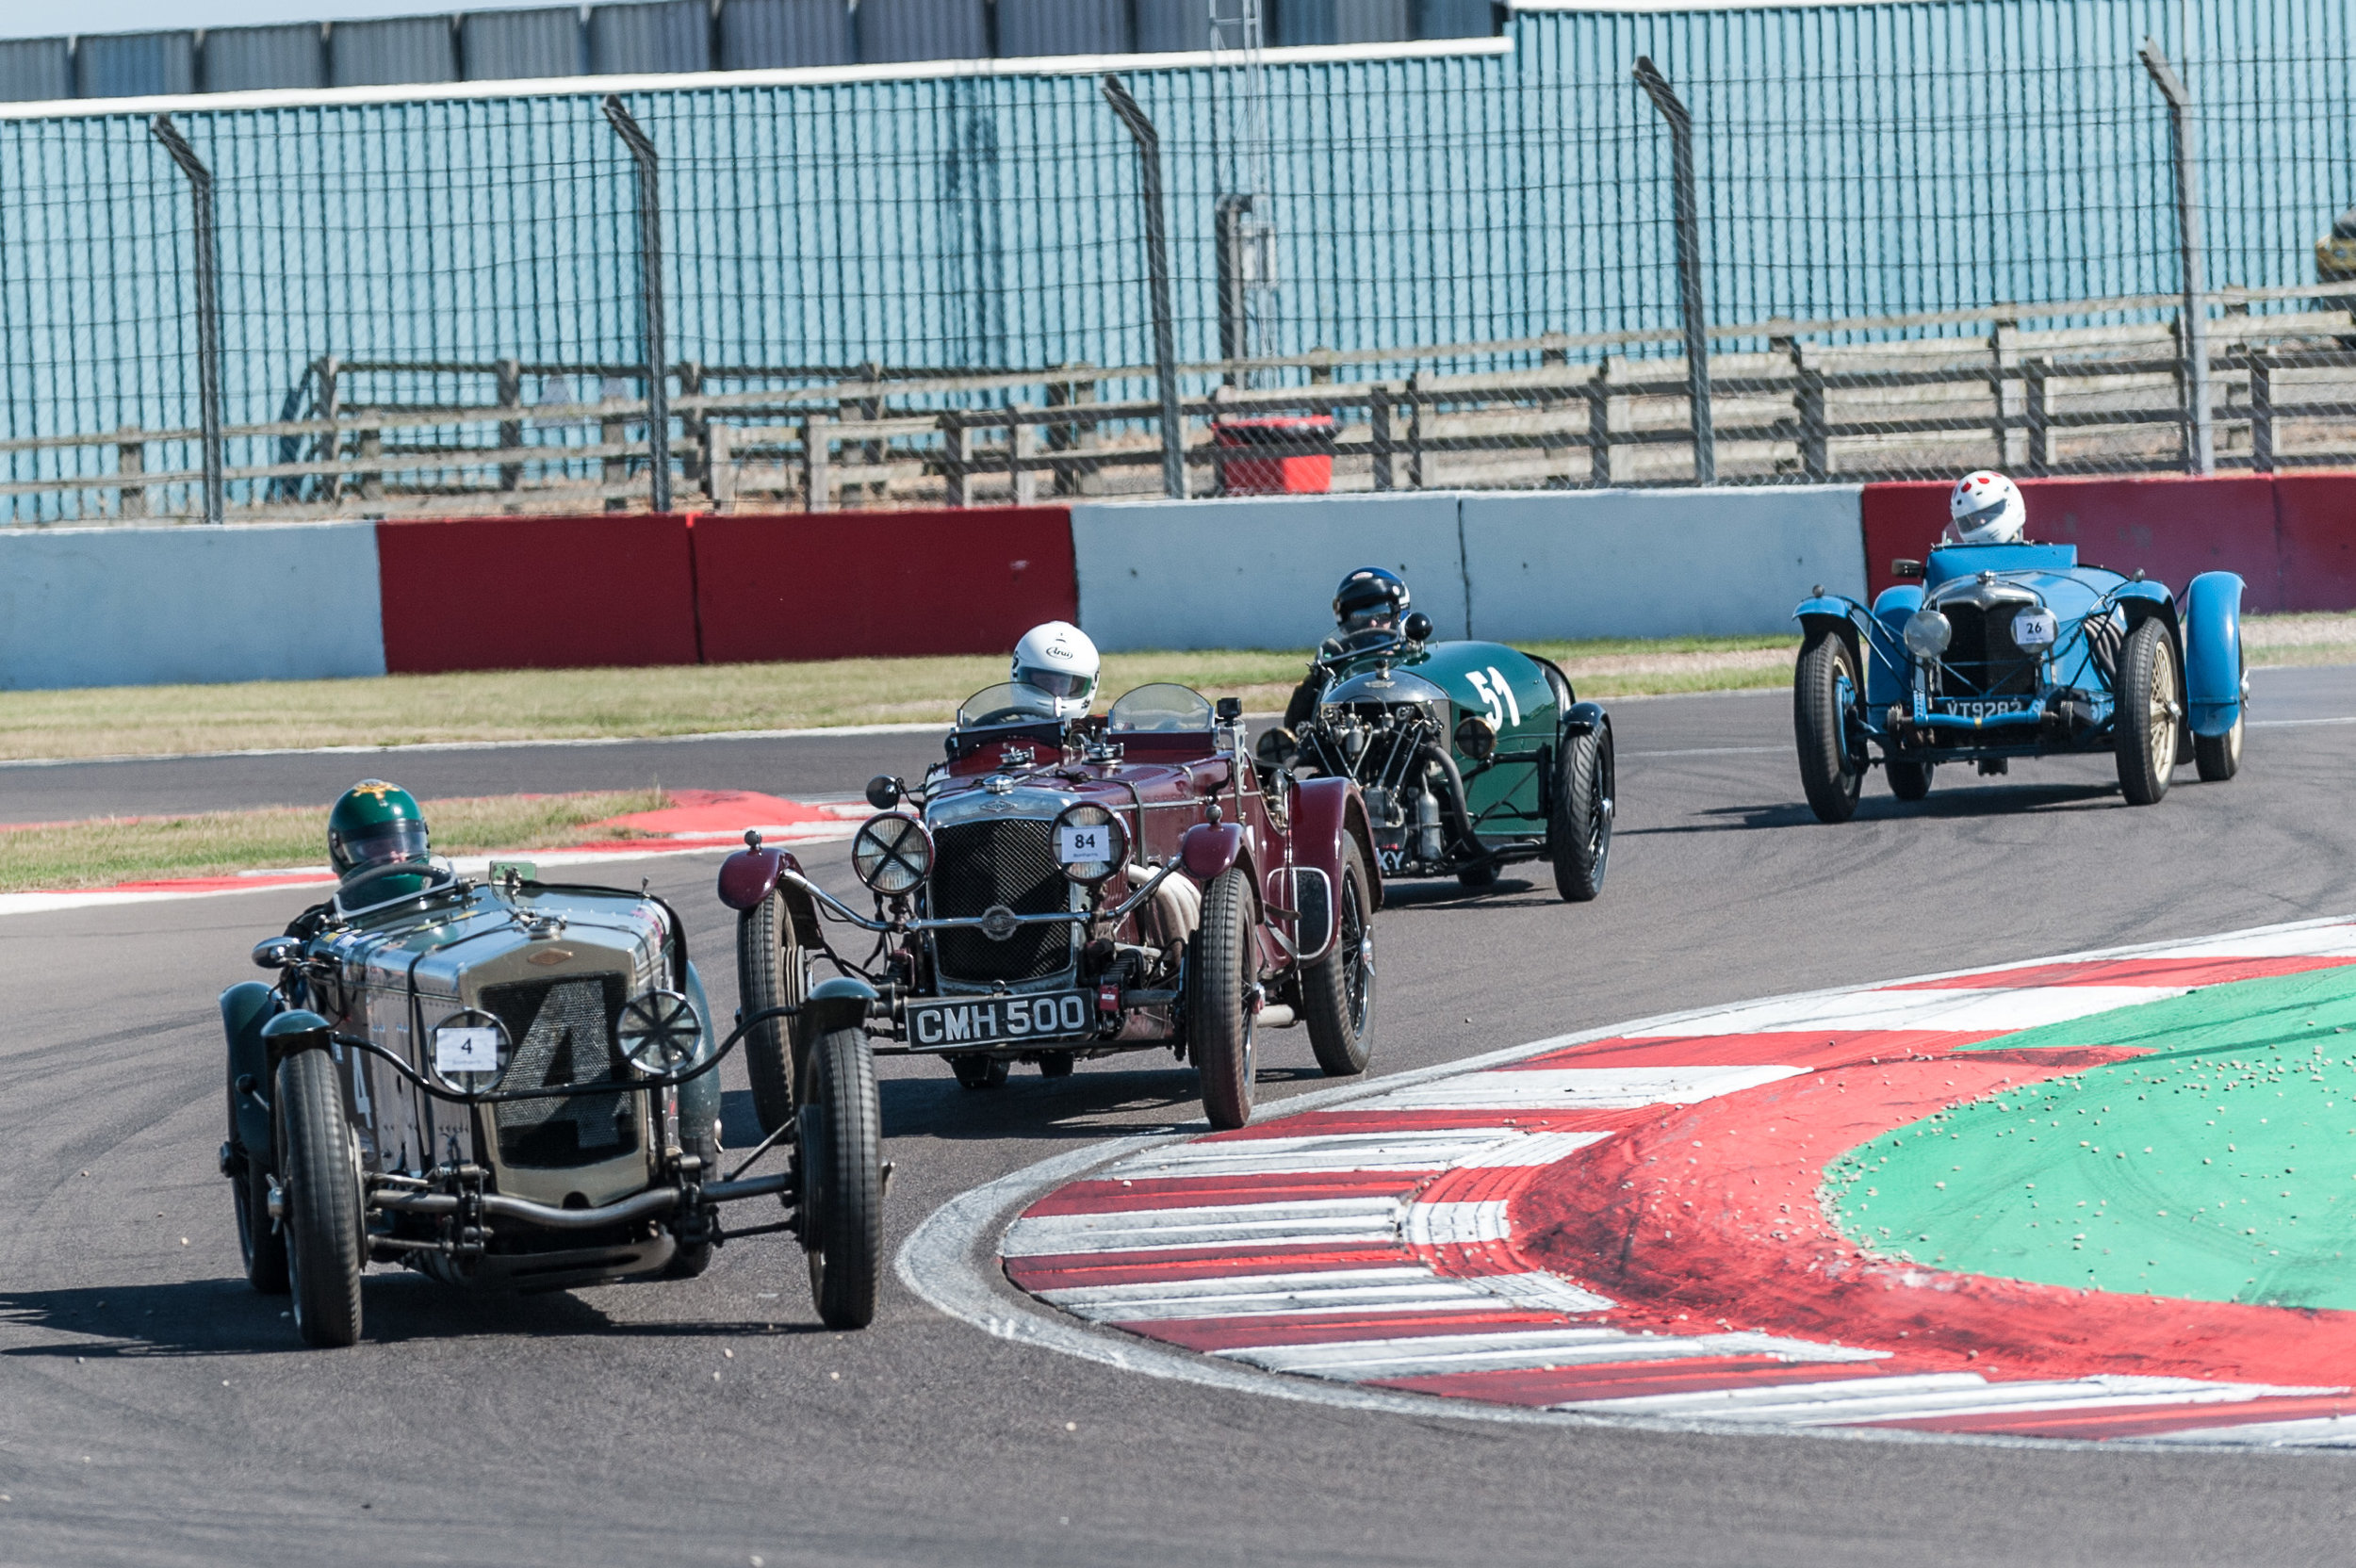 Chilcott leads Groves, Edwards and Kneller through the chicane:  Peter McFadyen